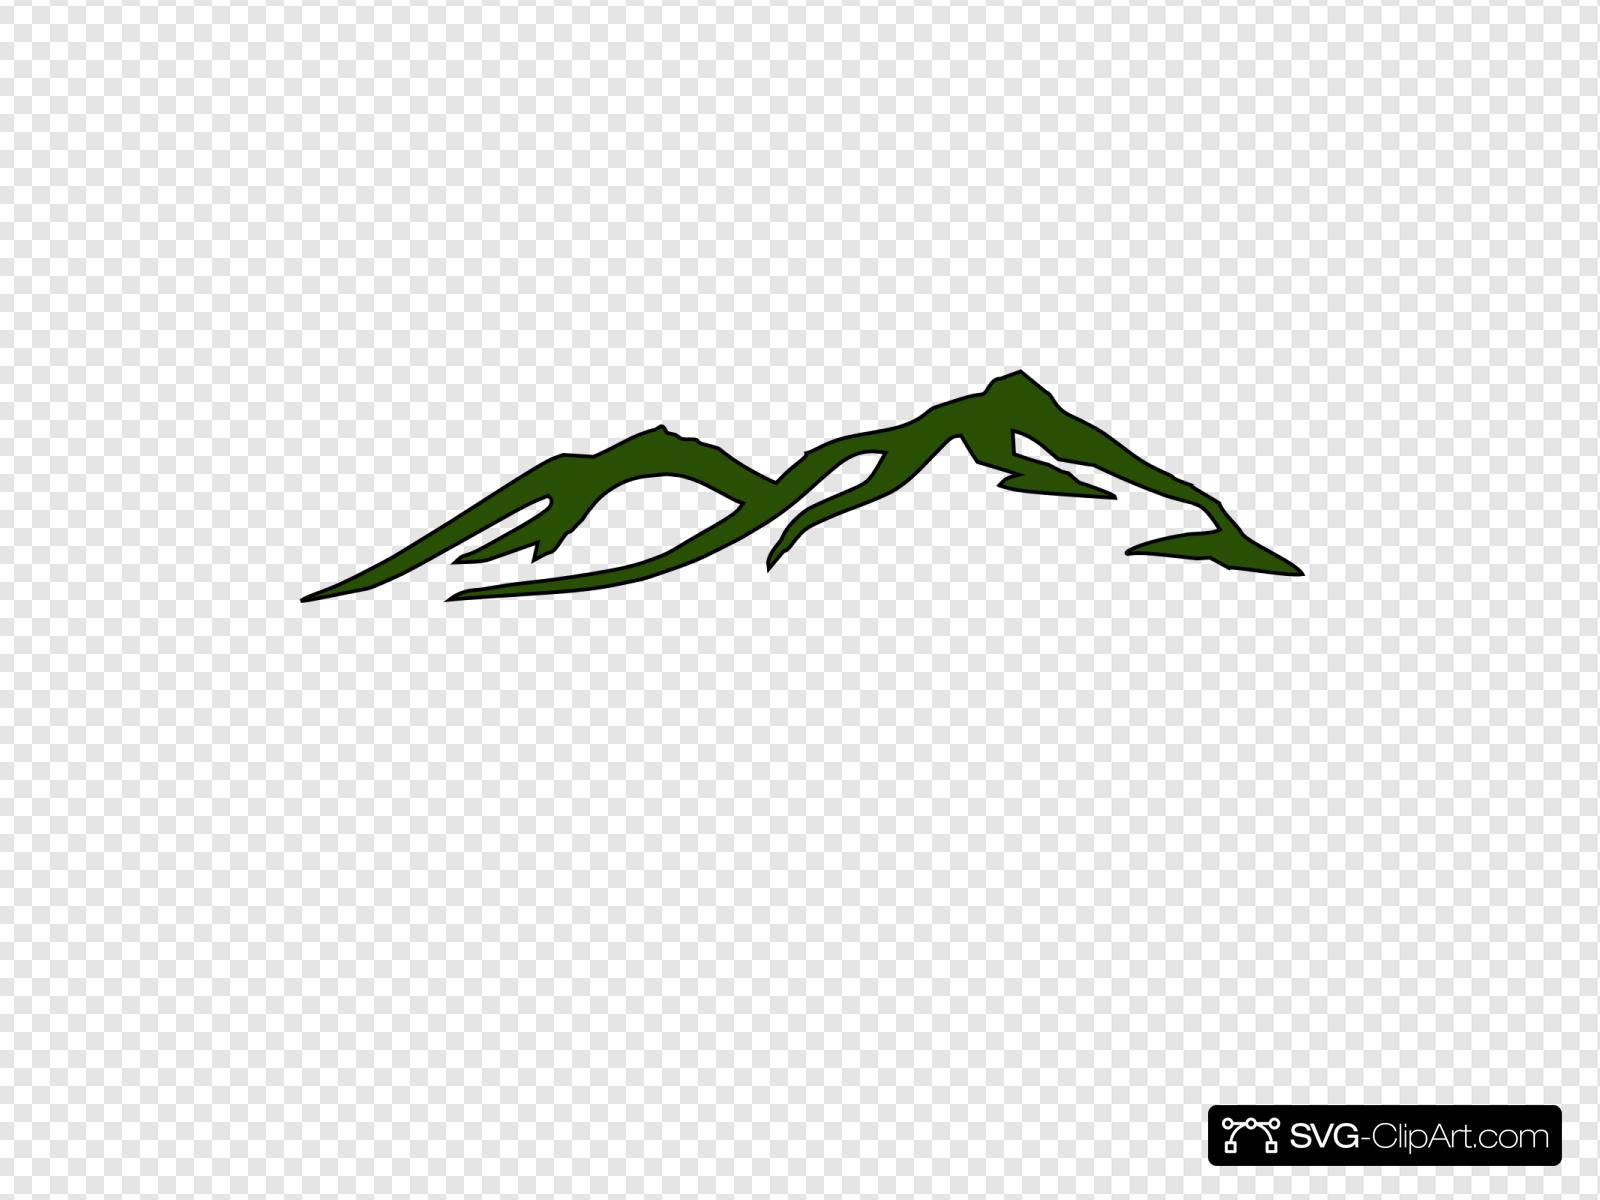 Forest healthy leaf leaves mother nature natural nature png logo nature logo leaf logo green logo creative logo. Green Mountains Svg Vector Green Mountains Clip Art Svg Clipart